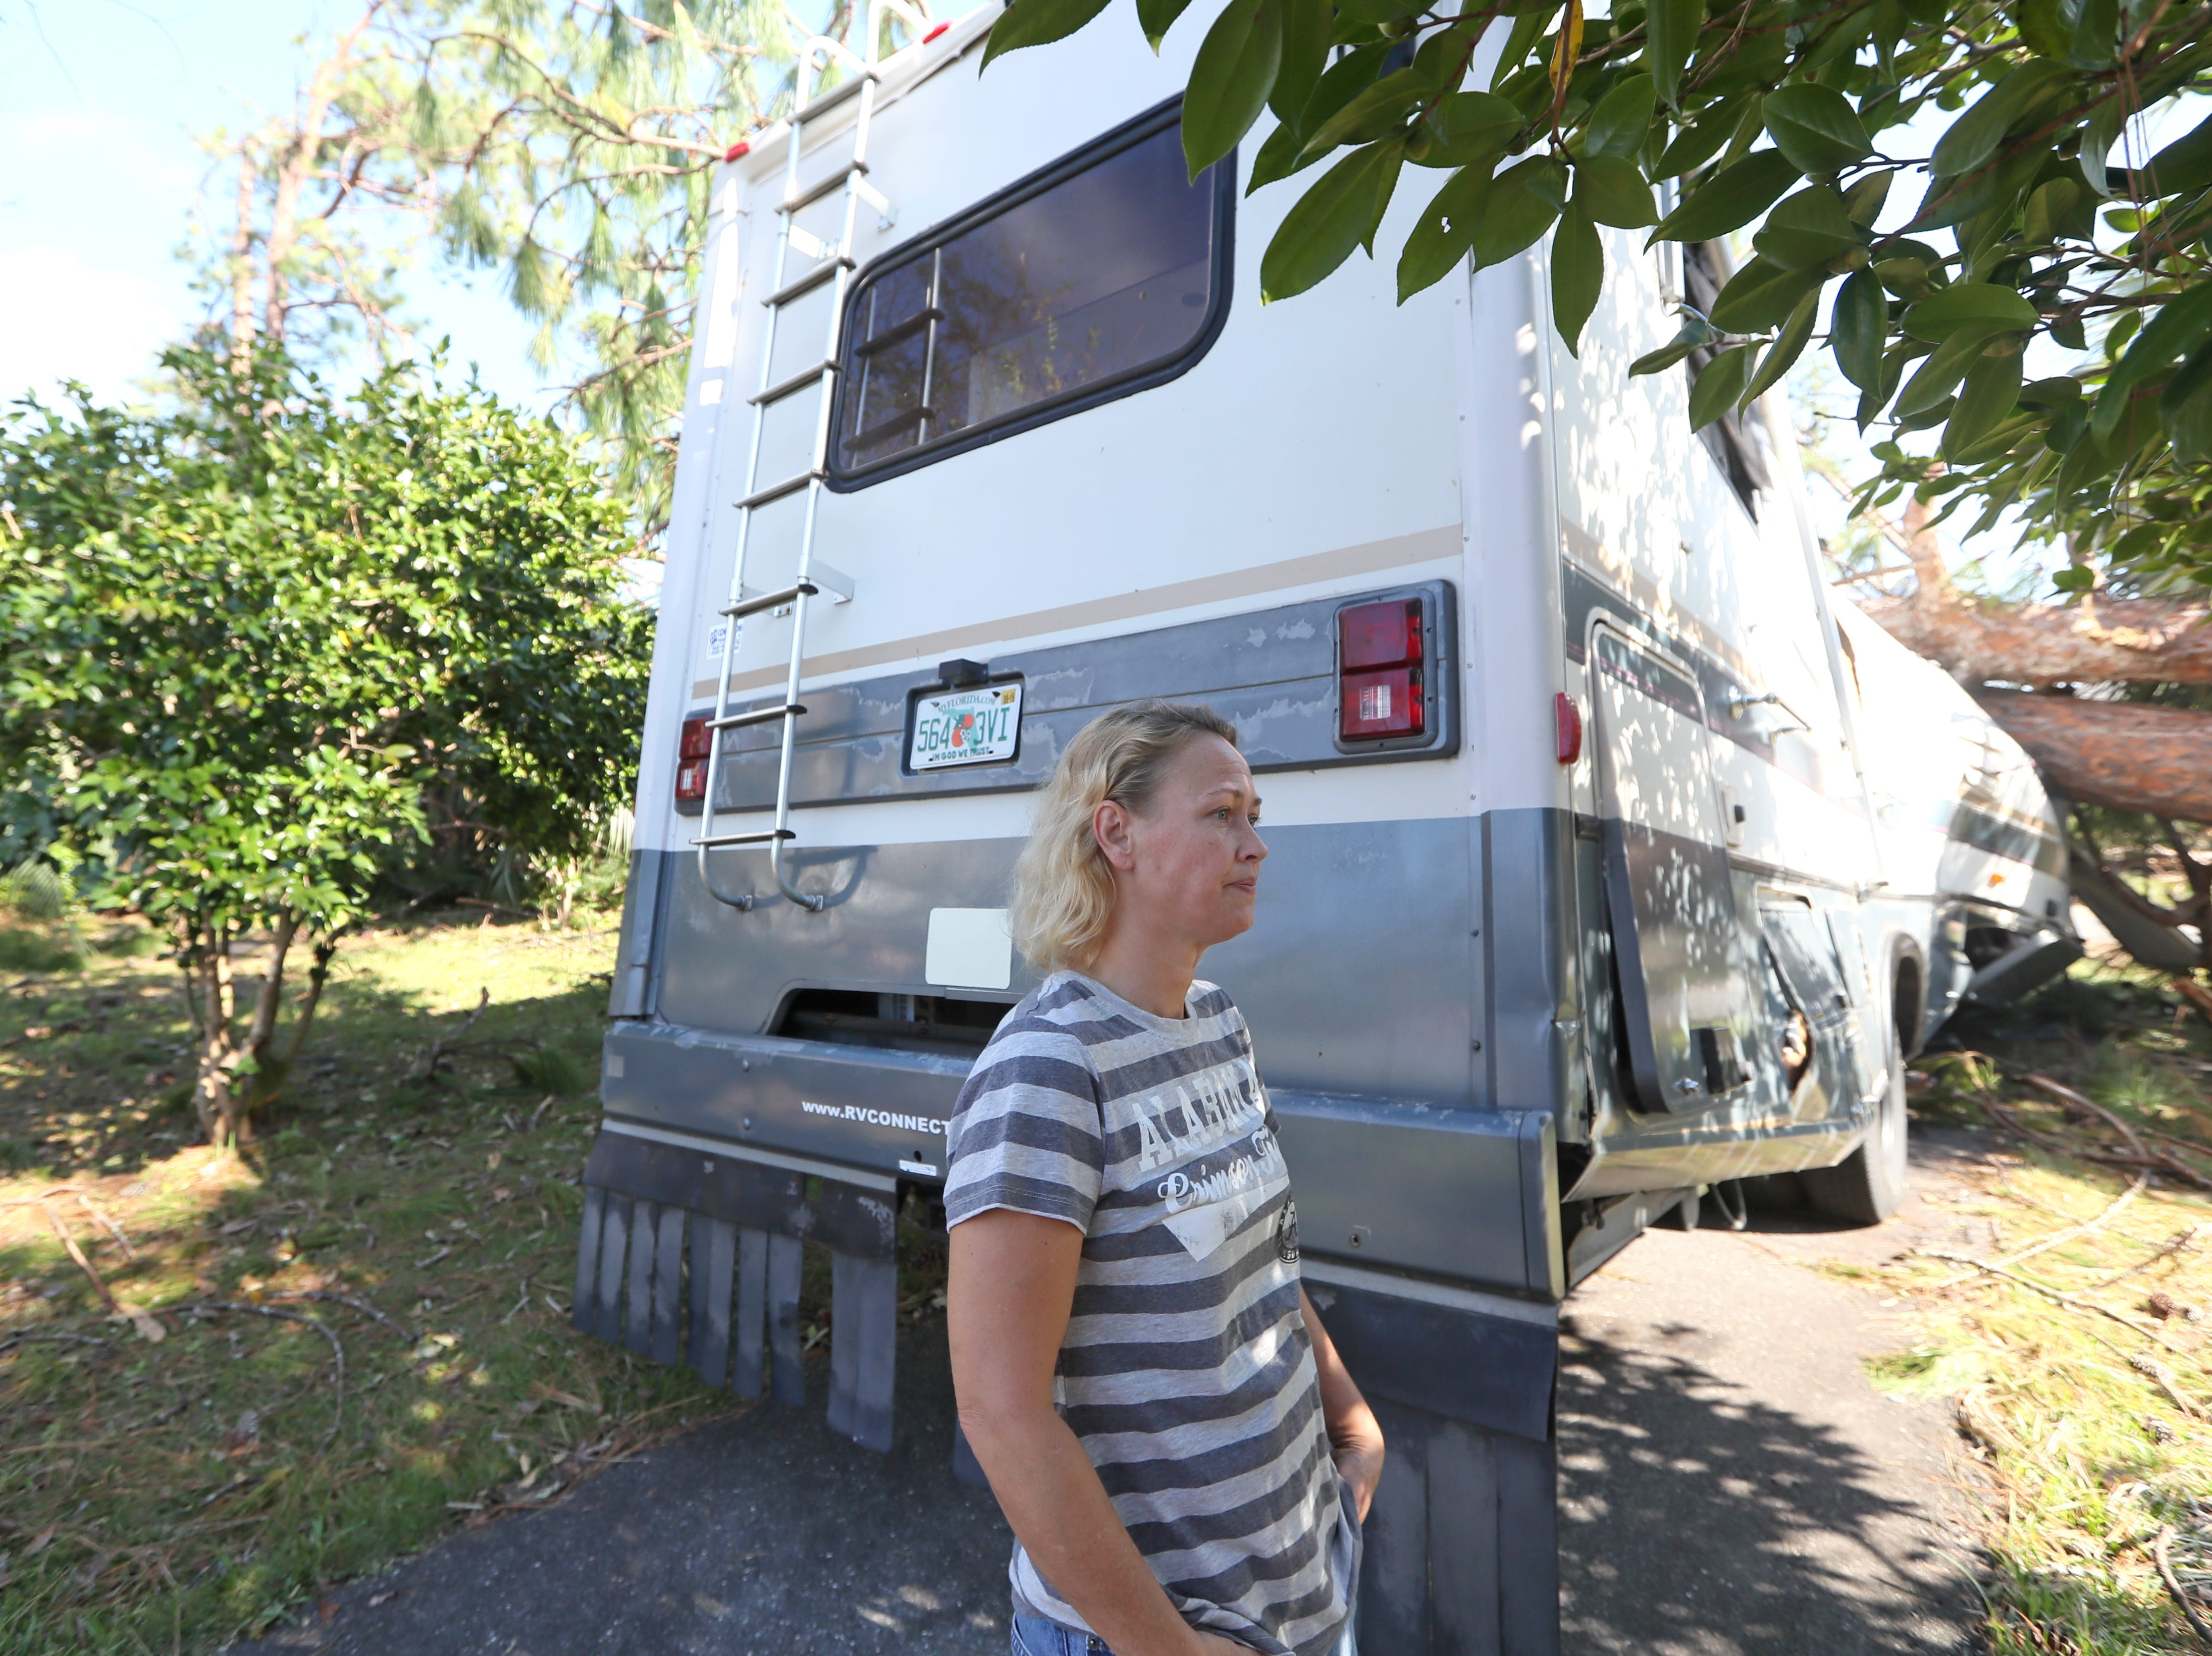 Tammy Patrick stands outside of her RV after it was crushed by a fallen tree from Hurricane Michael's path in Chattahoochee, Fla. Monday, Oct. 15, 2018.